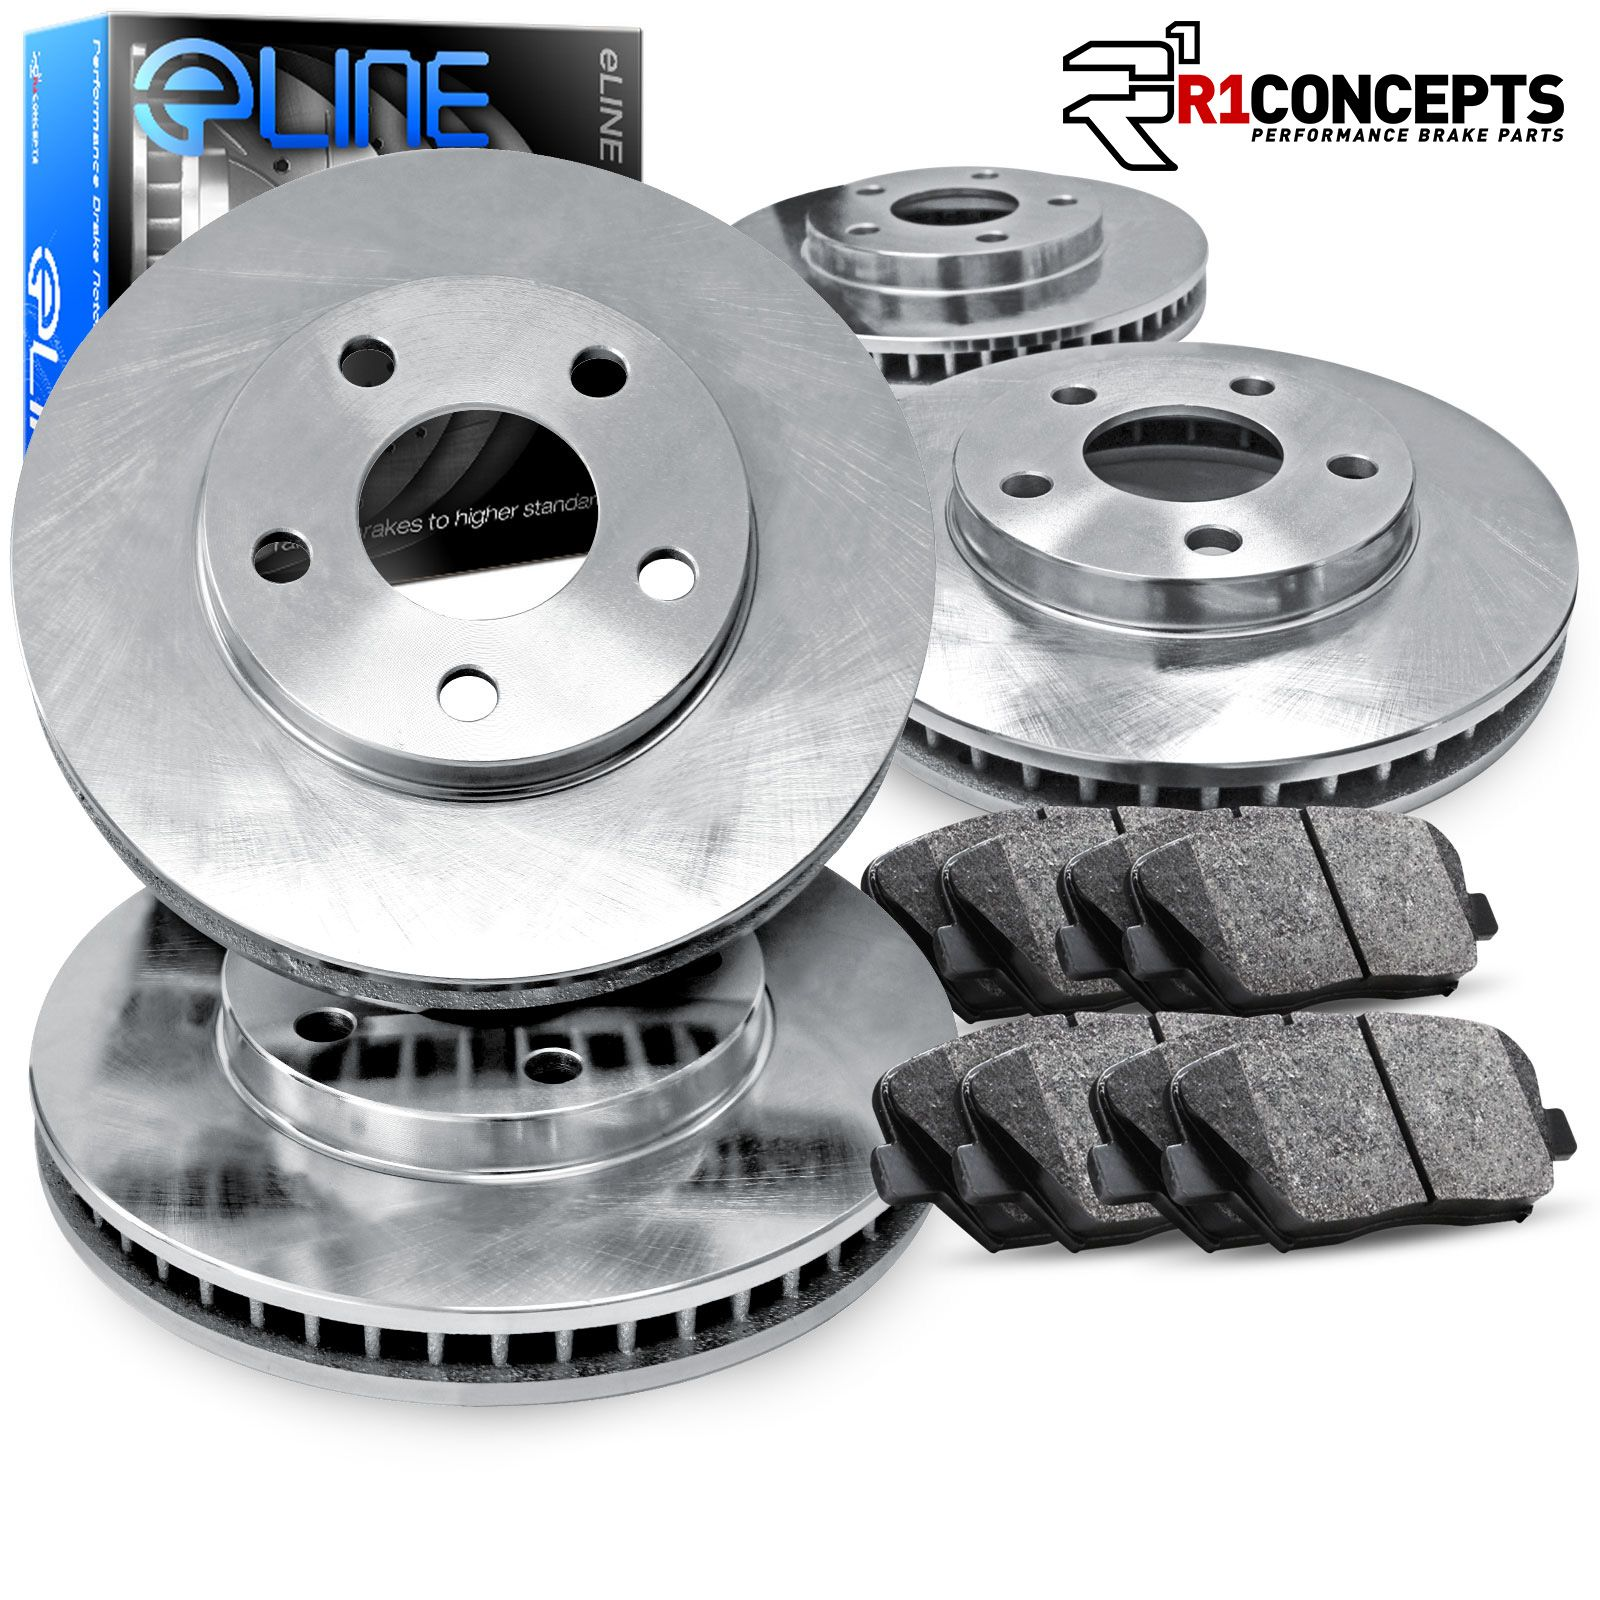 Ceramic Brake Pads For 2003-2005 Cadillac CTS Rear eLine Plain Brake Rotors